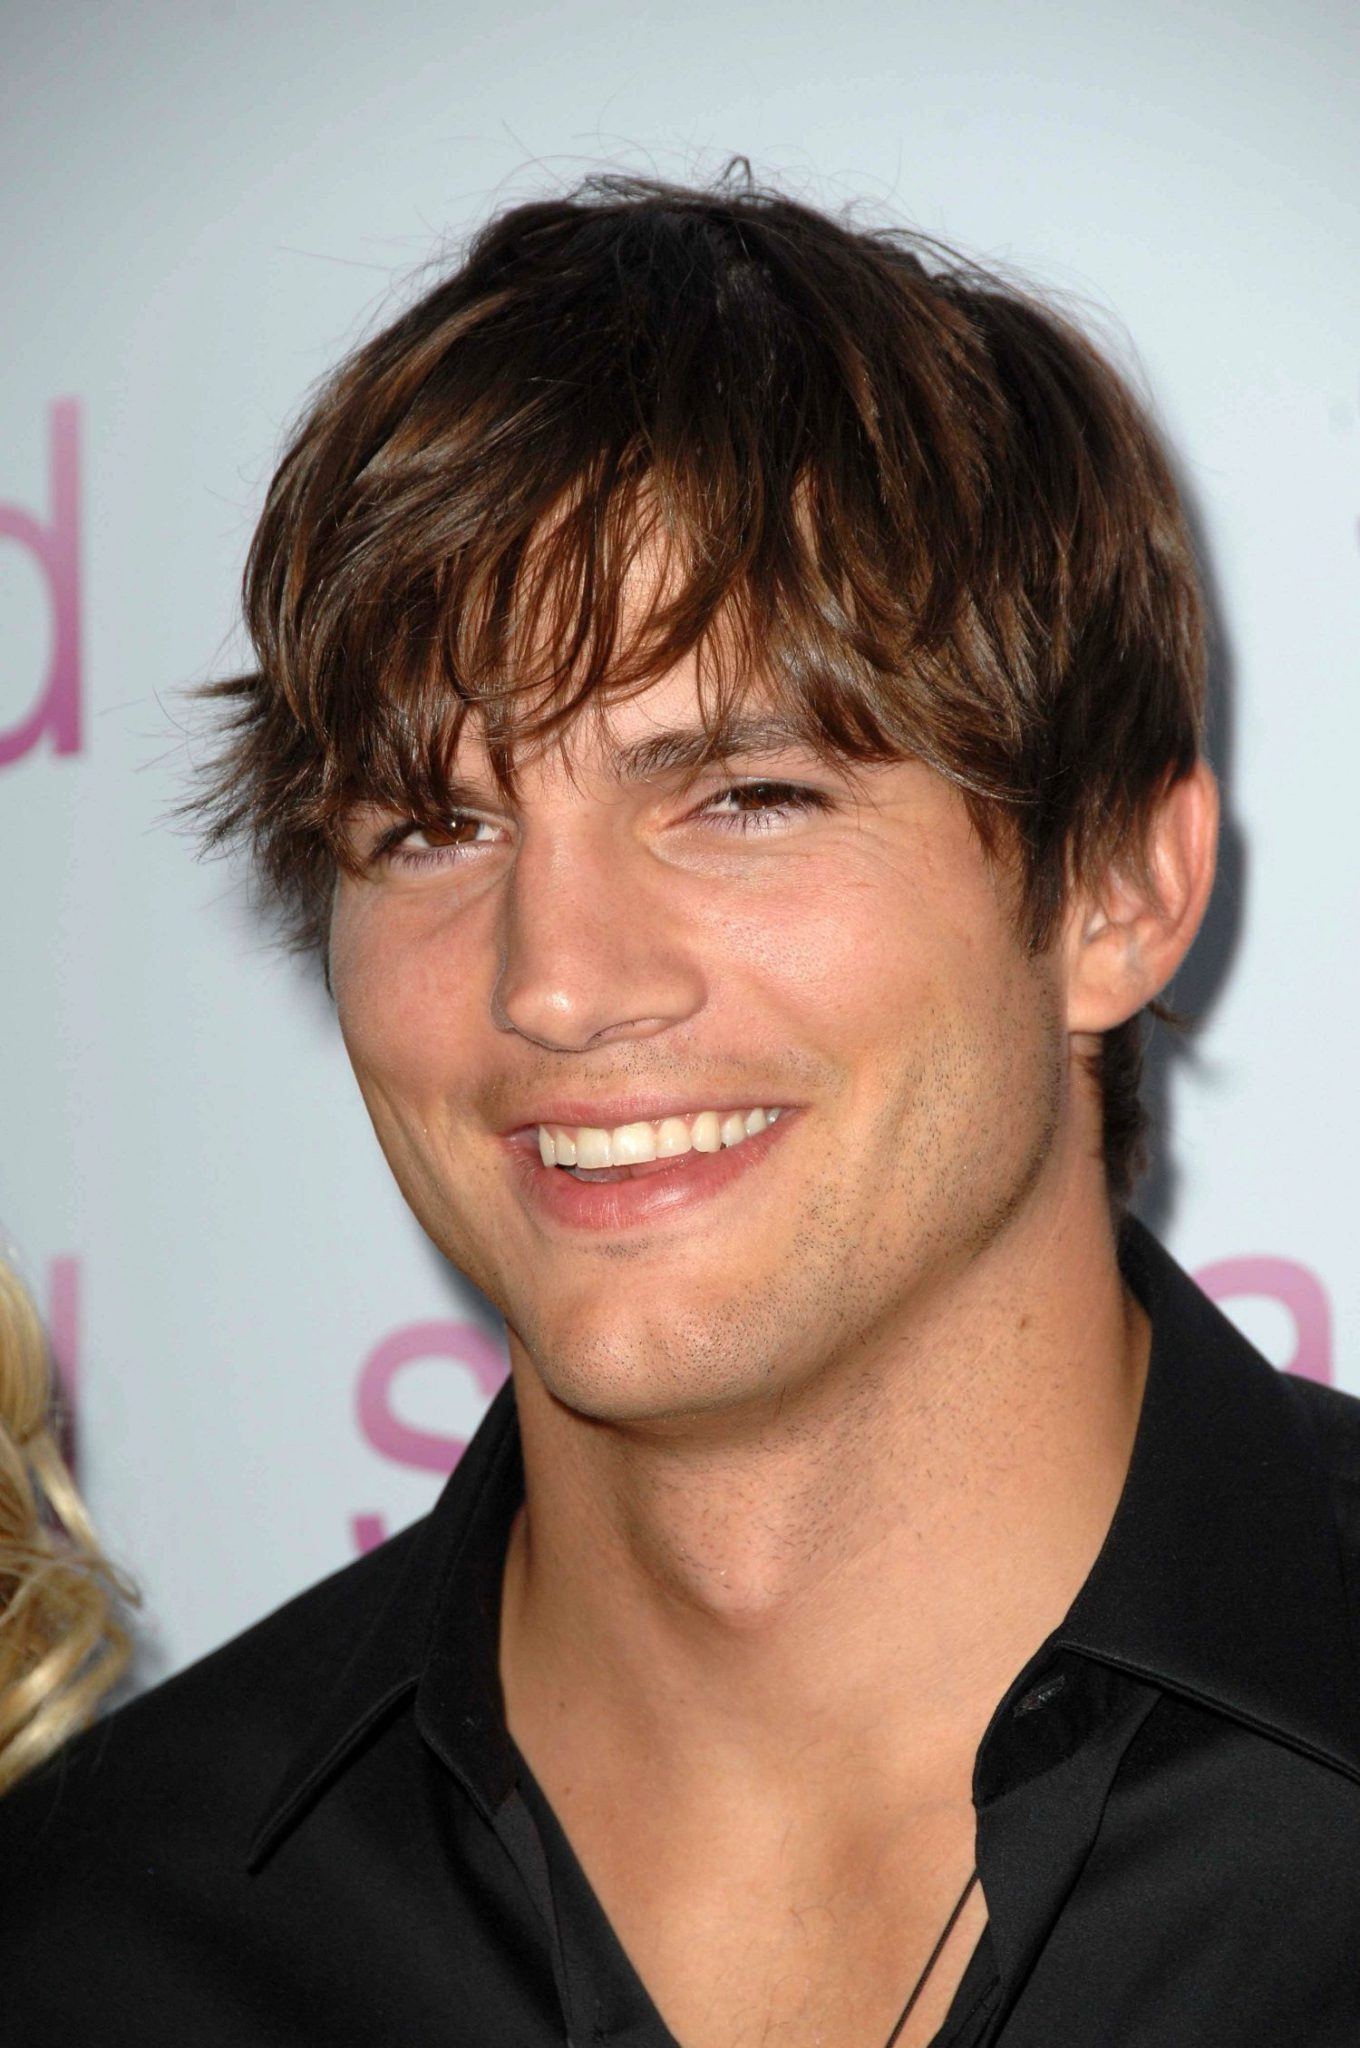 ashton kutcher - photo #45